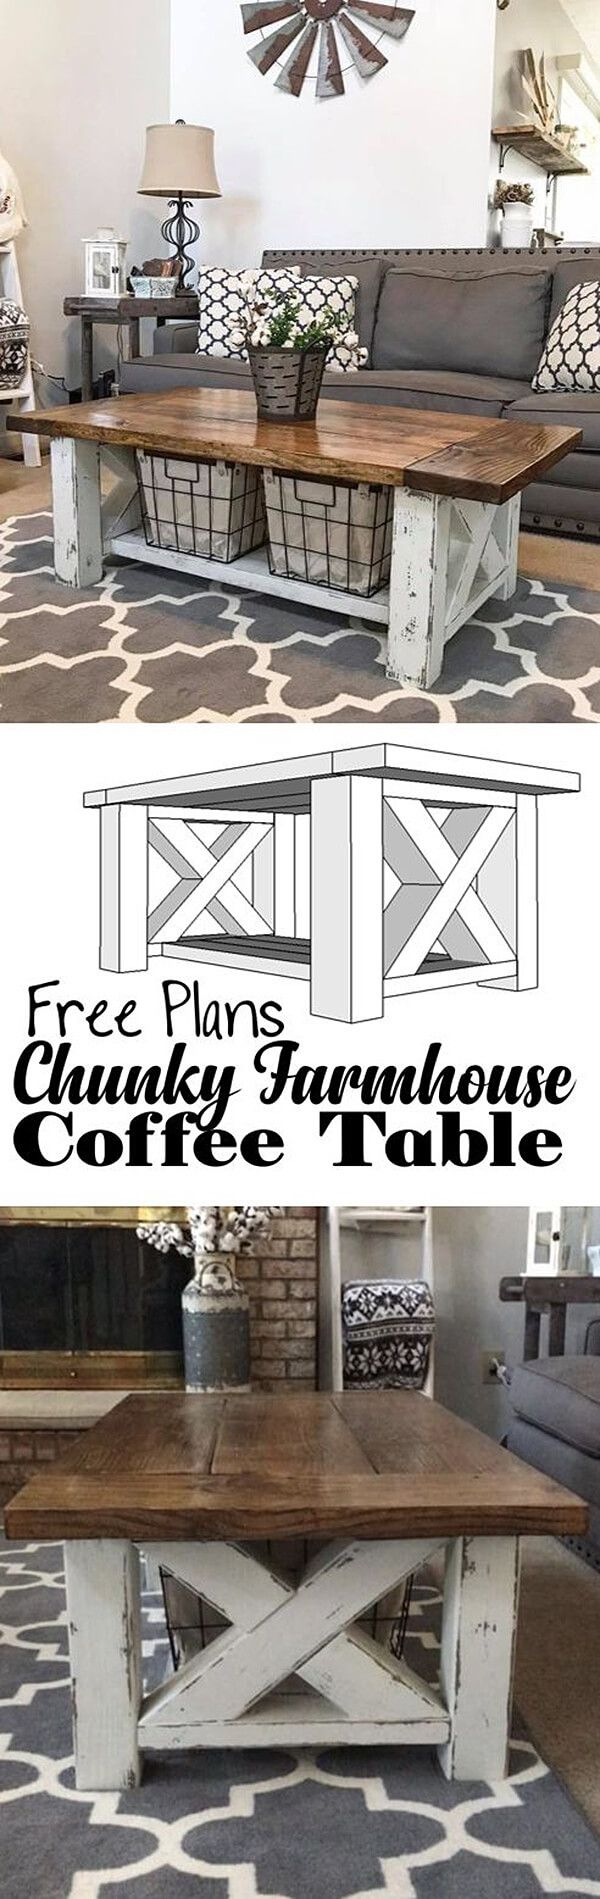 25 DIY Farmhouse Coffee Table Ideas that are both practical and stylish